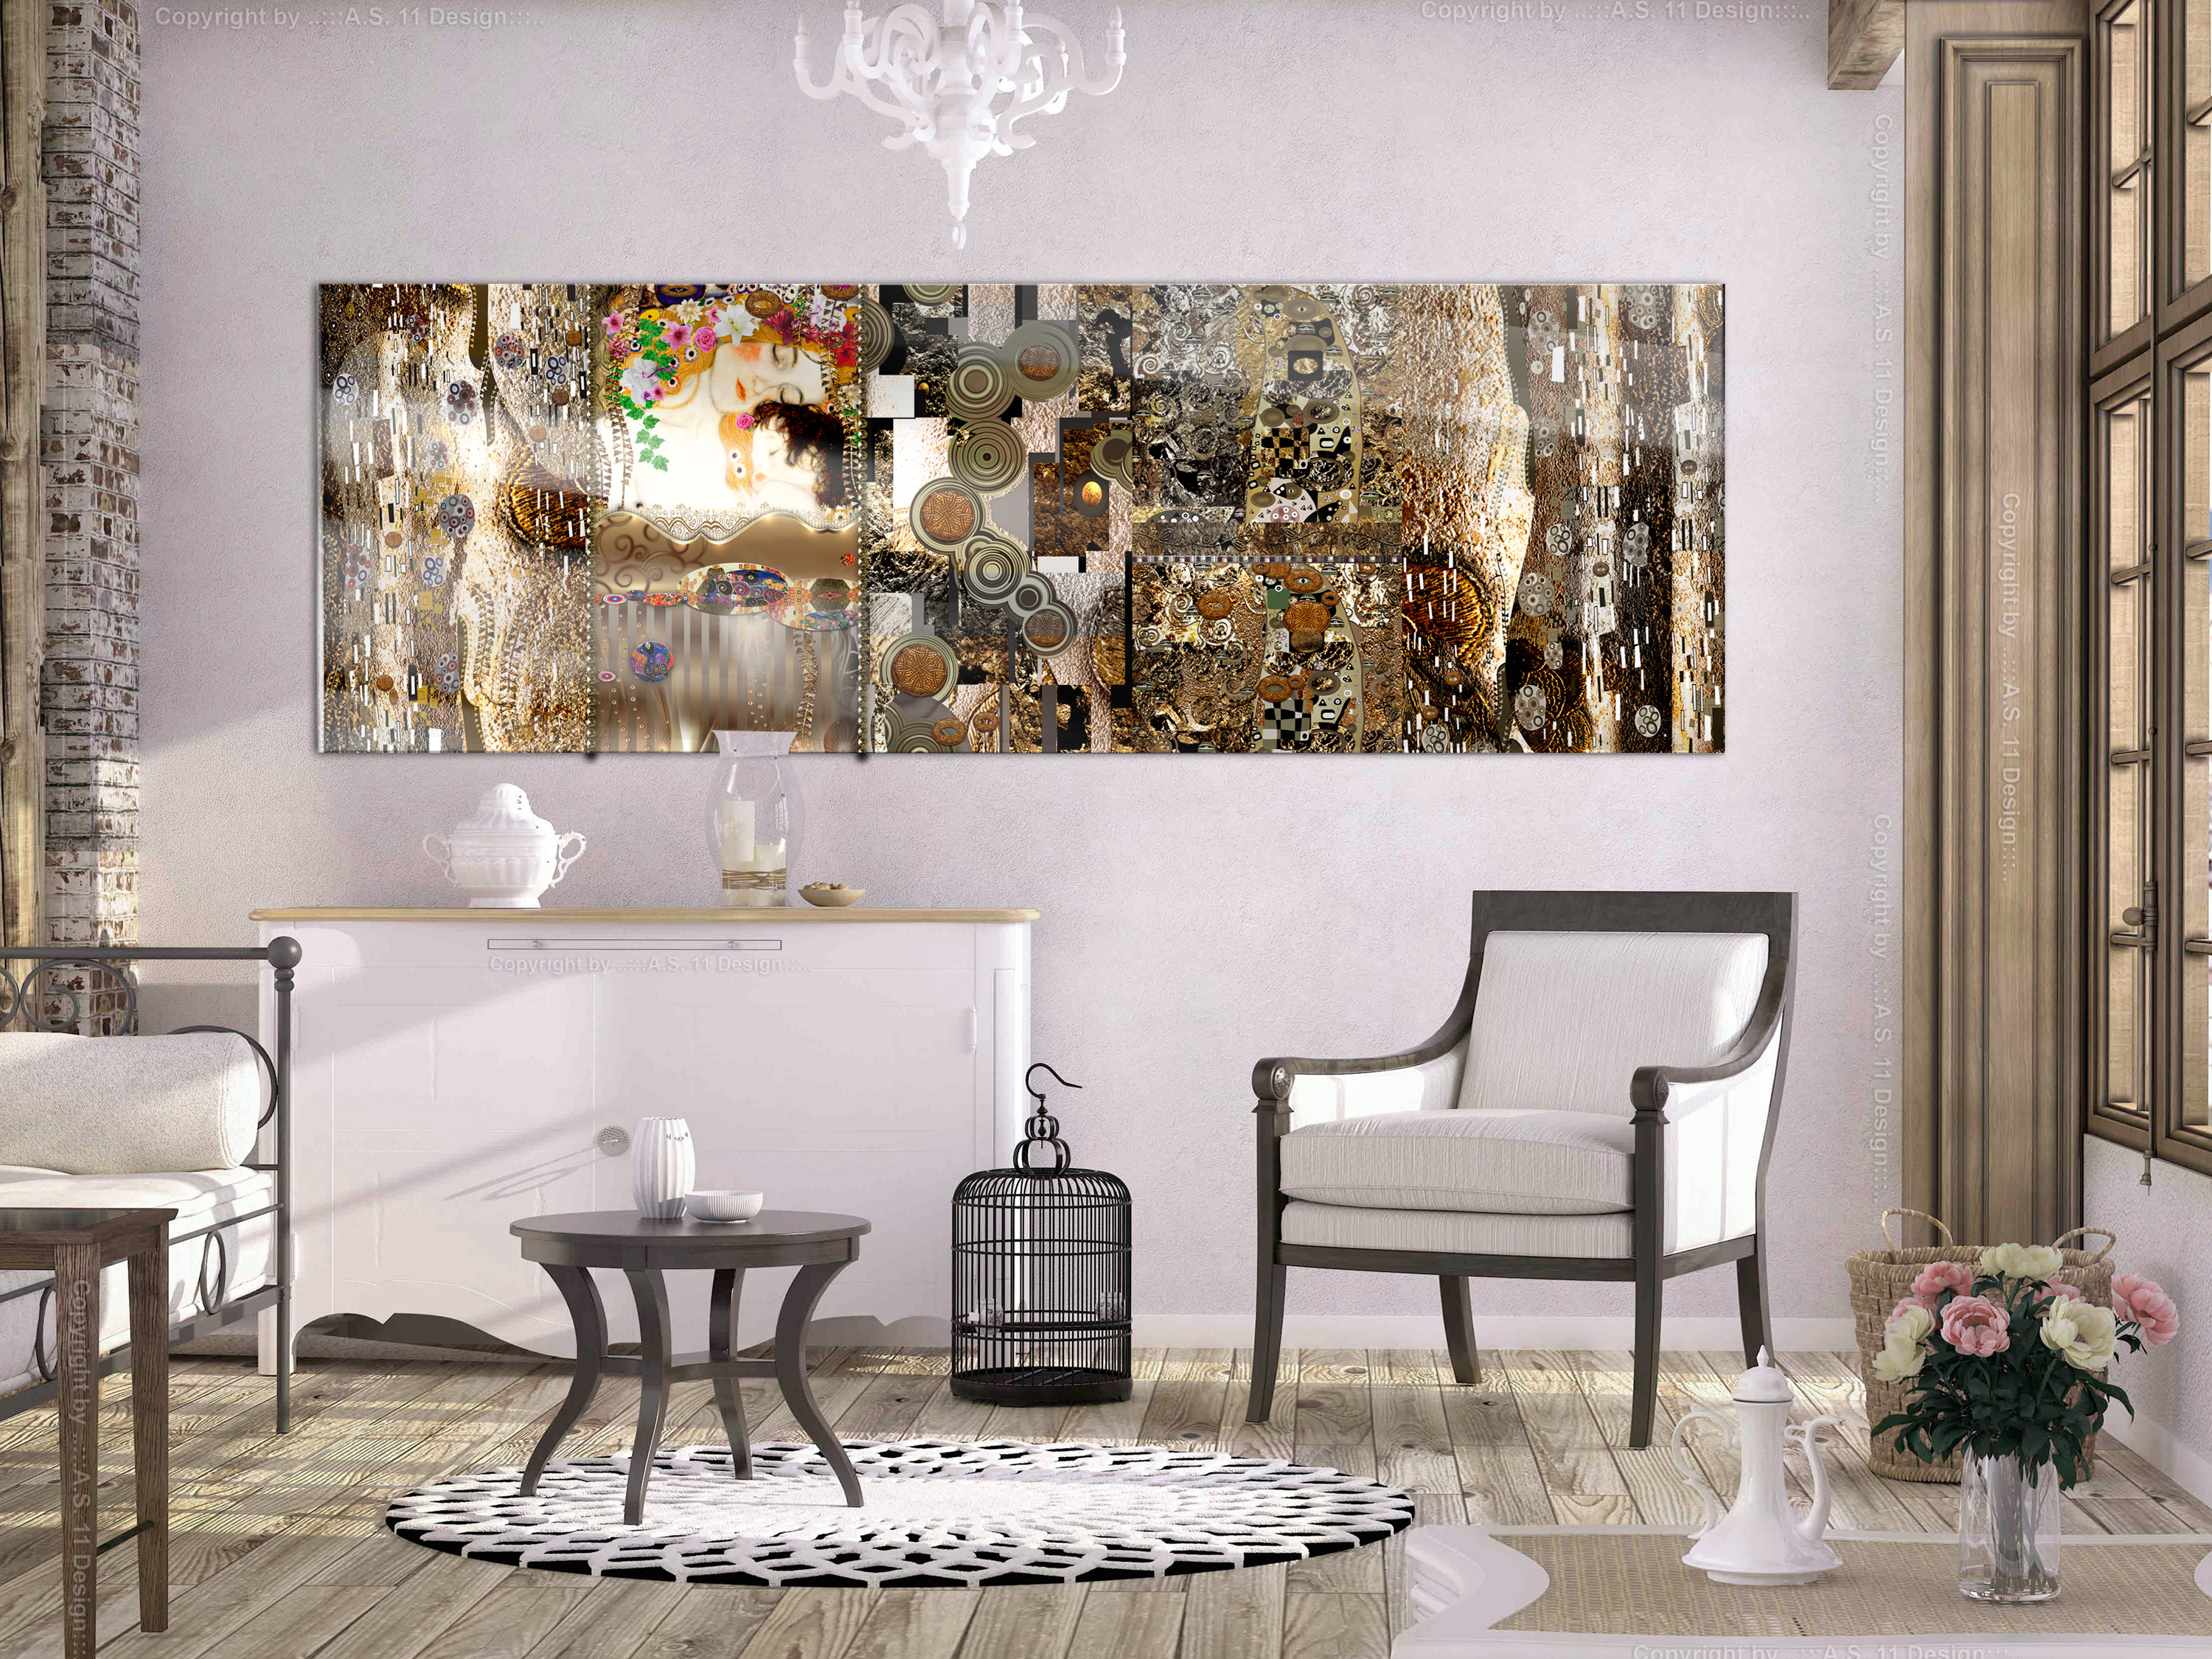 acrylglasbild gustav klimt inspiration moderne wandbilder xxl l a 0012 k b ebay. Black Bedroom Furniture Sets. Home Design Ideas